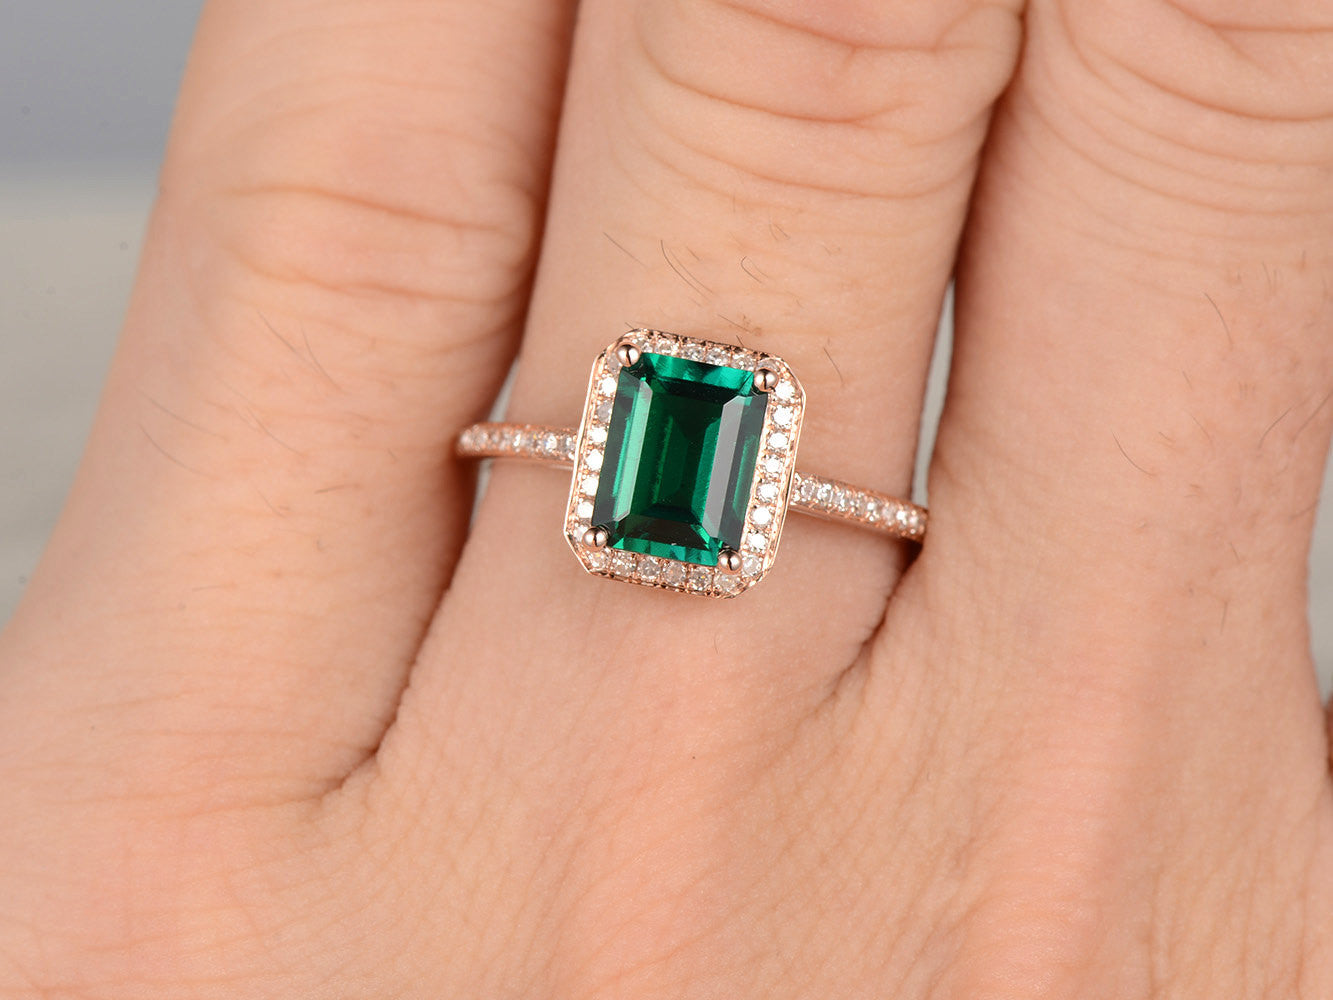 6x8mm Emerald Engagement ring Rose gold,Diamond wedding band,14k,Emerald Cut Treated,Green Gemstone Promise Ring,Bridal,Halo pave set